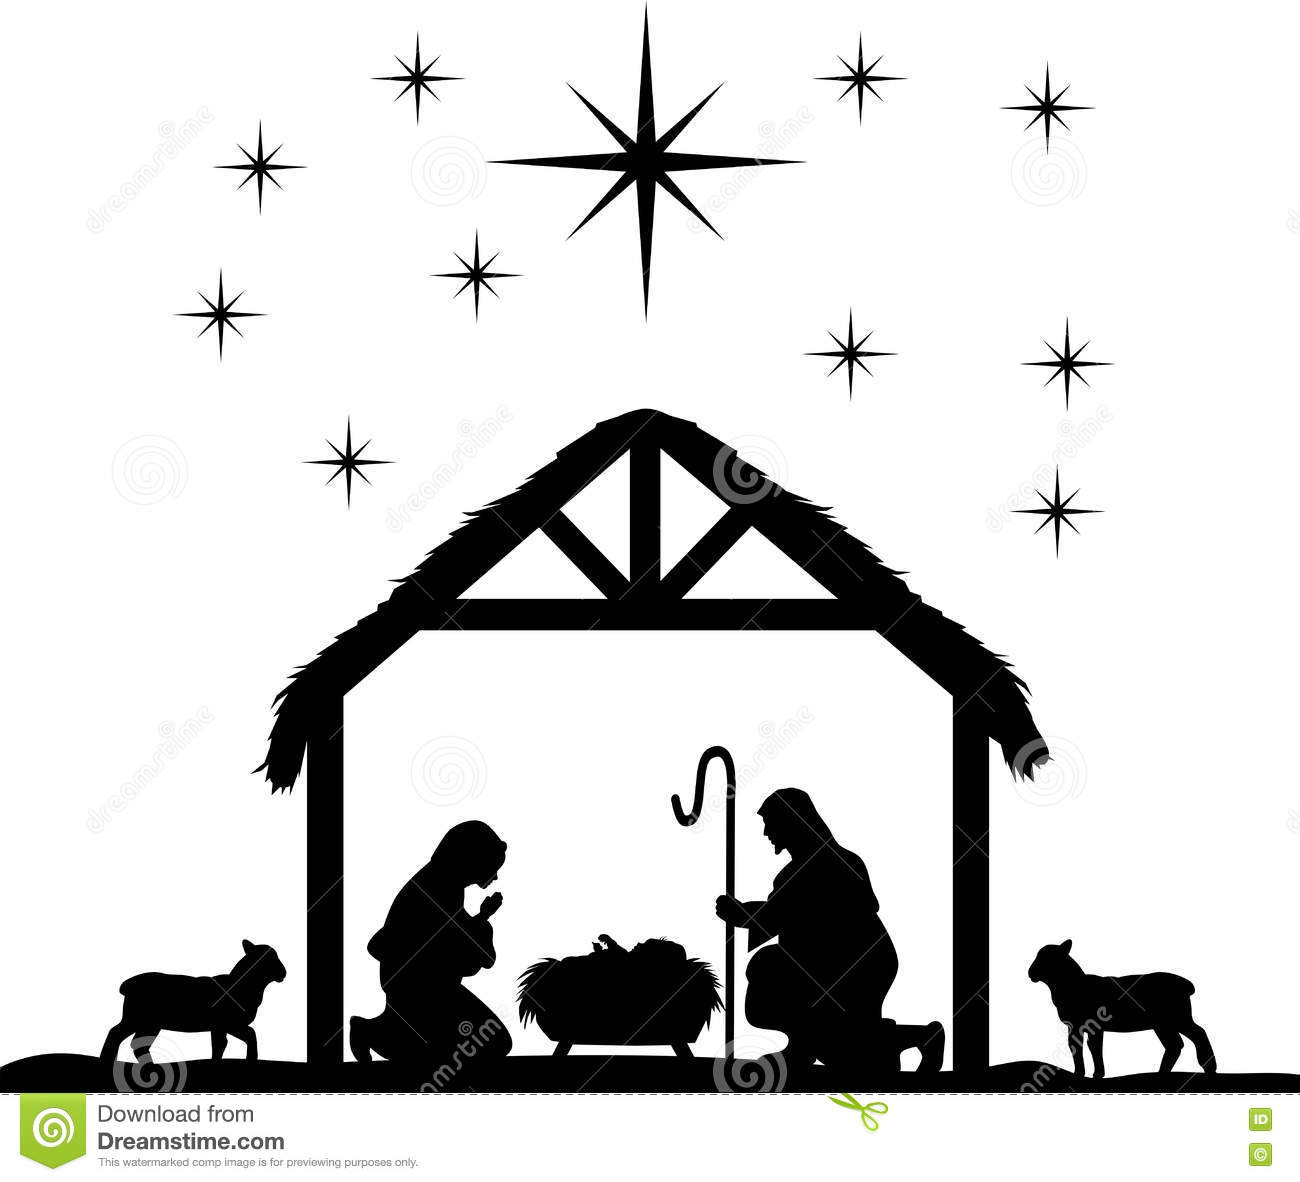 Nativity Scene Silhouettes Stock Vector - Image: 78869398